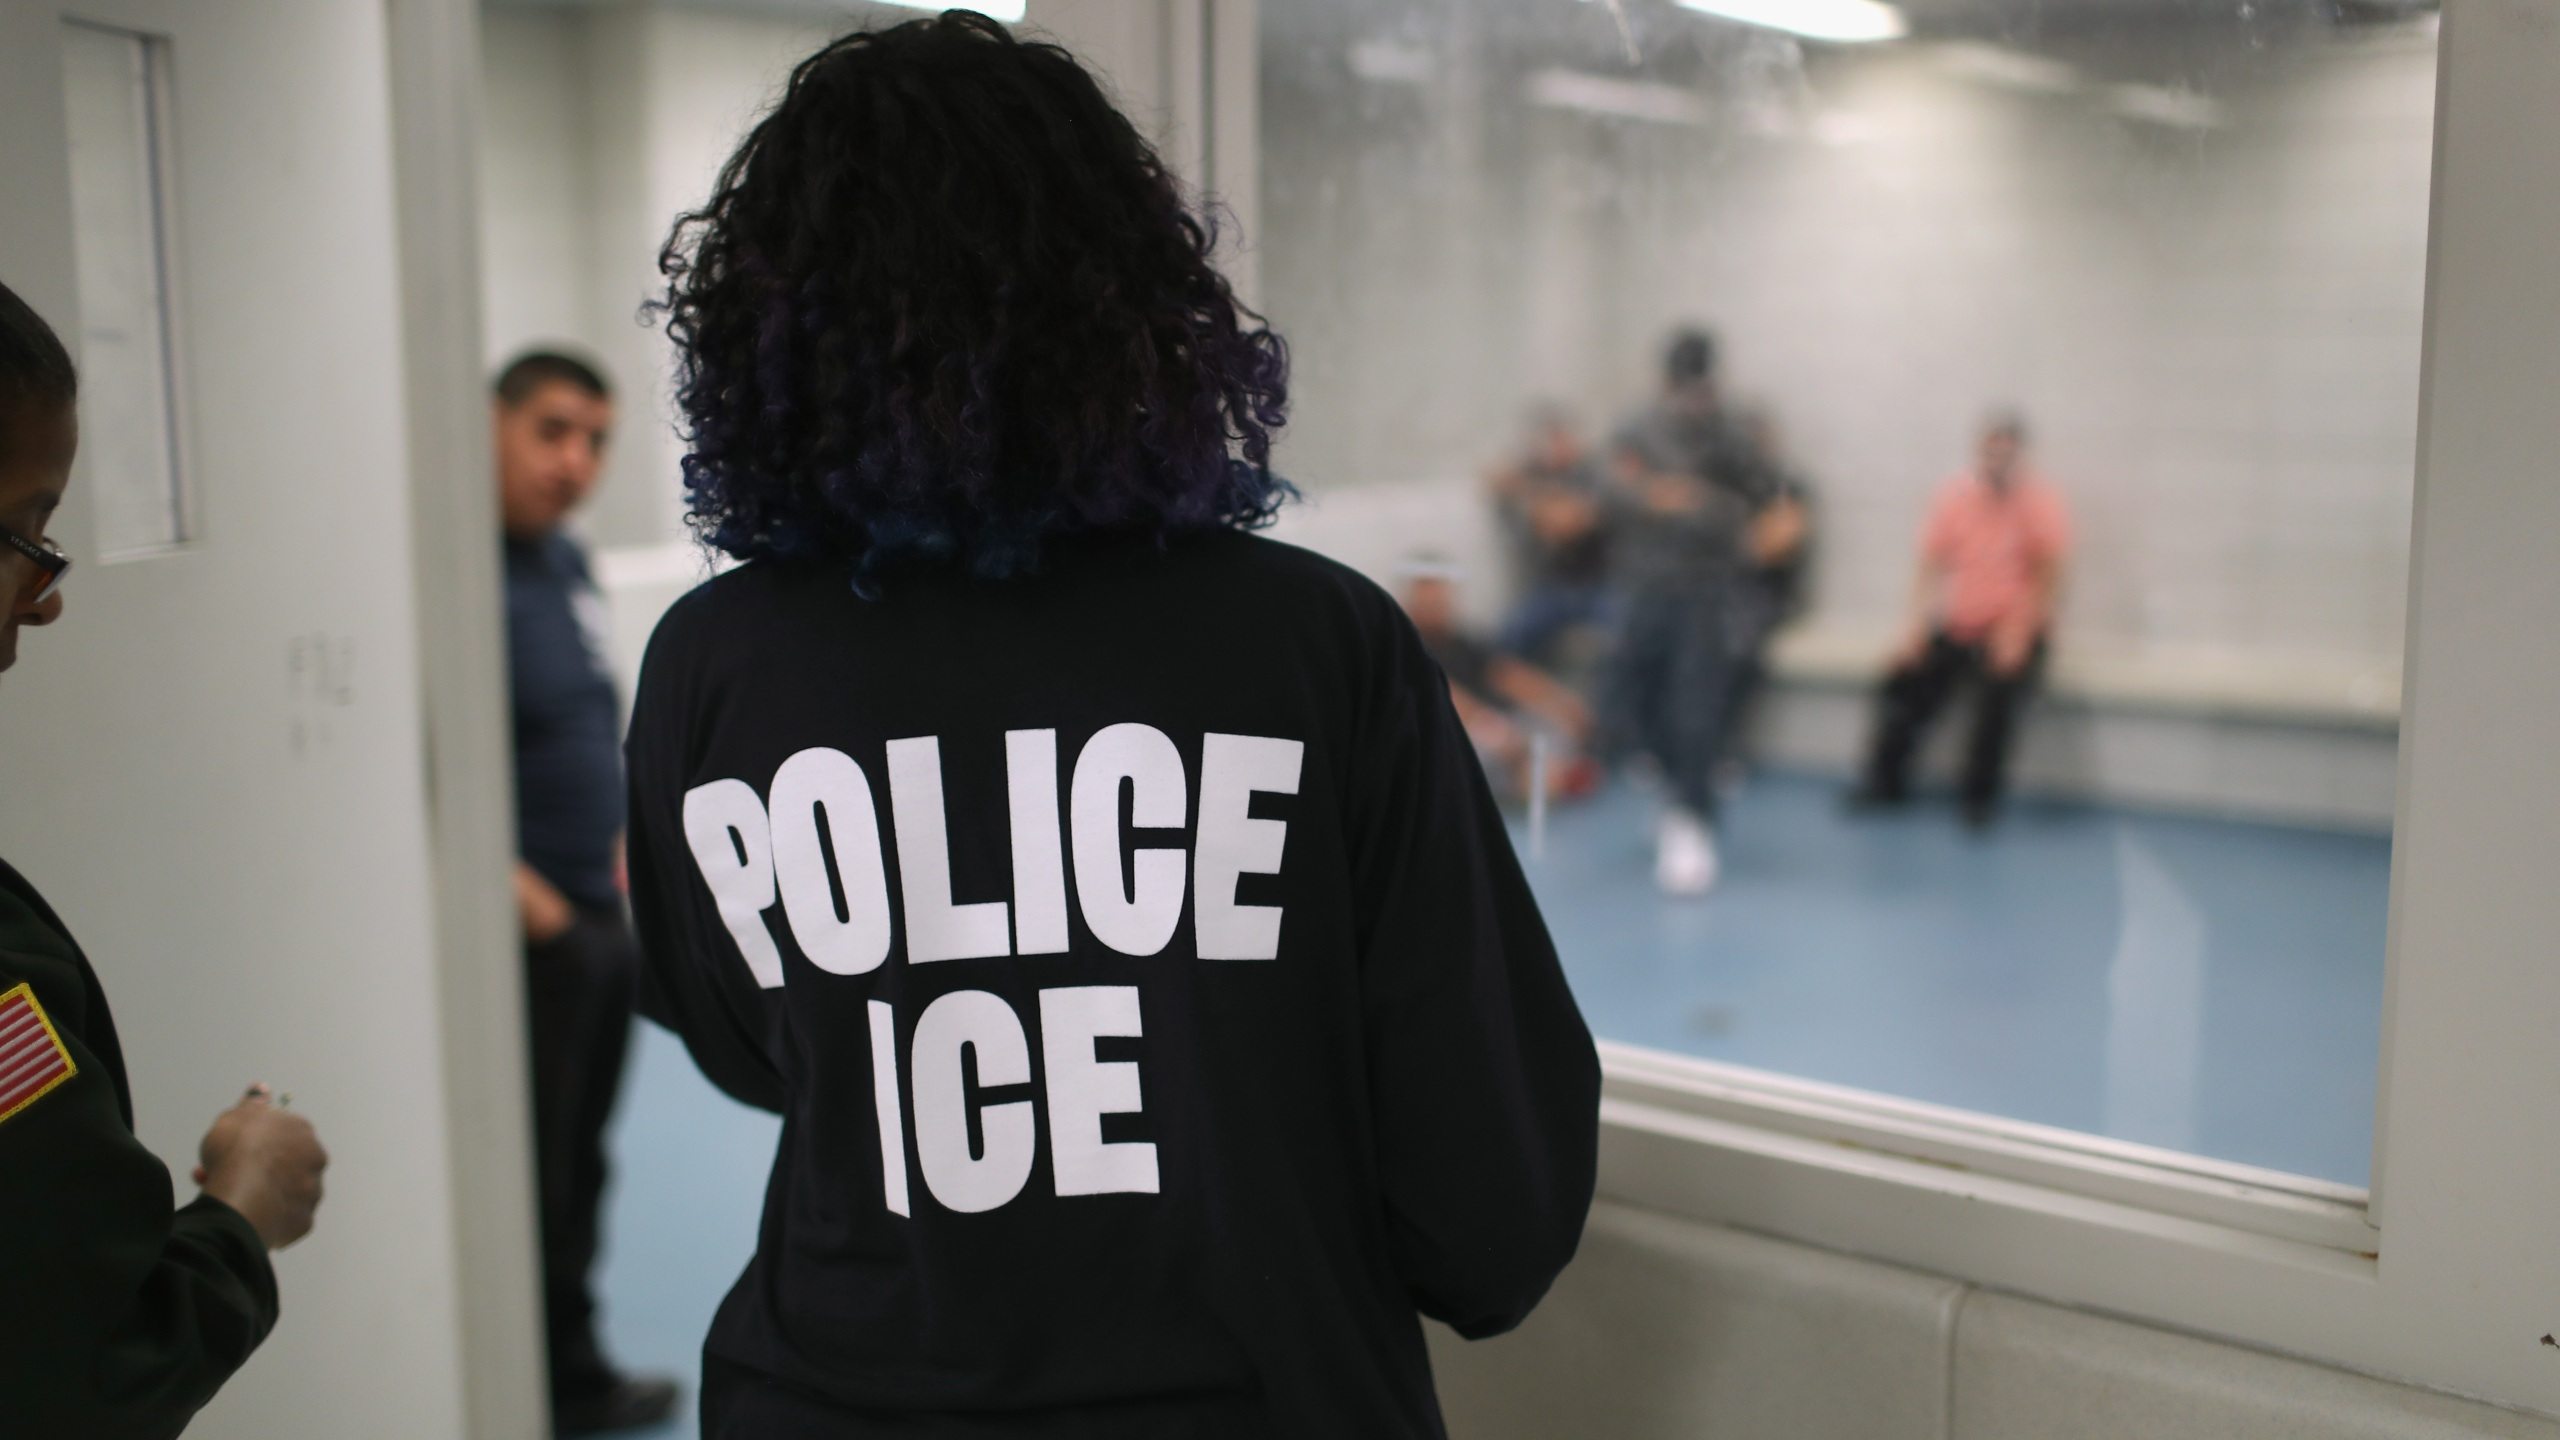 New Mexico denies ICE request for access to workforce data | KRQE